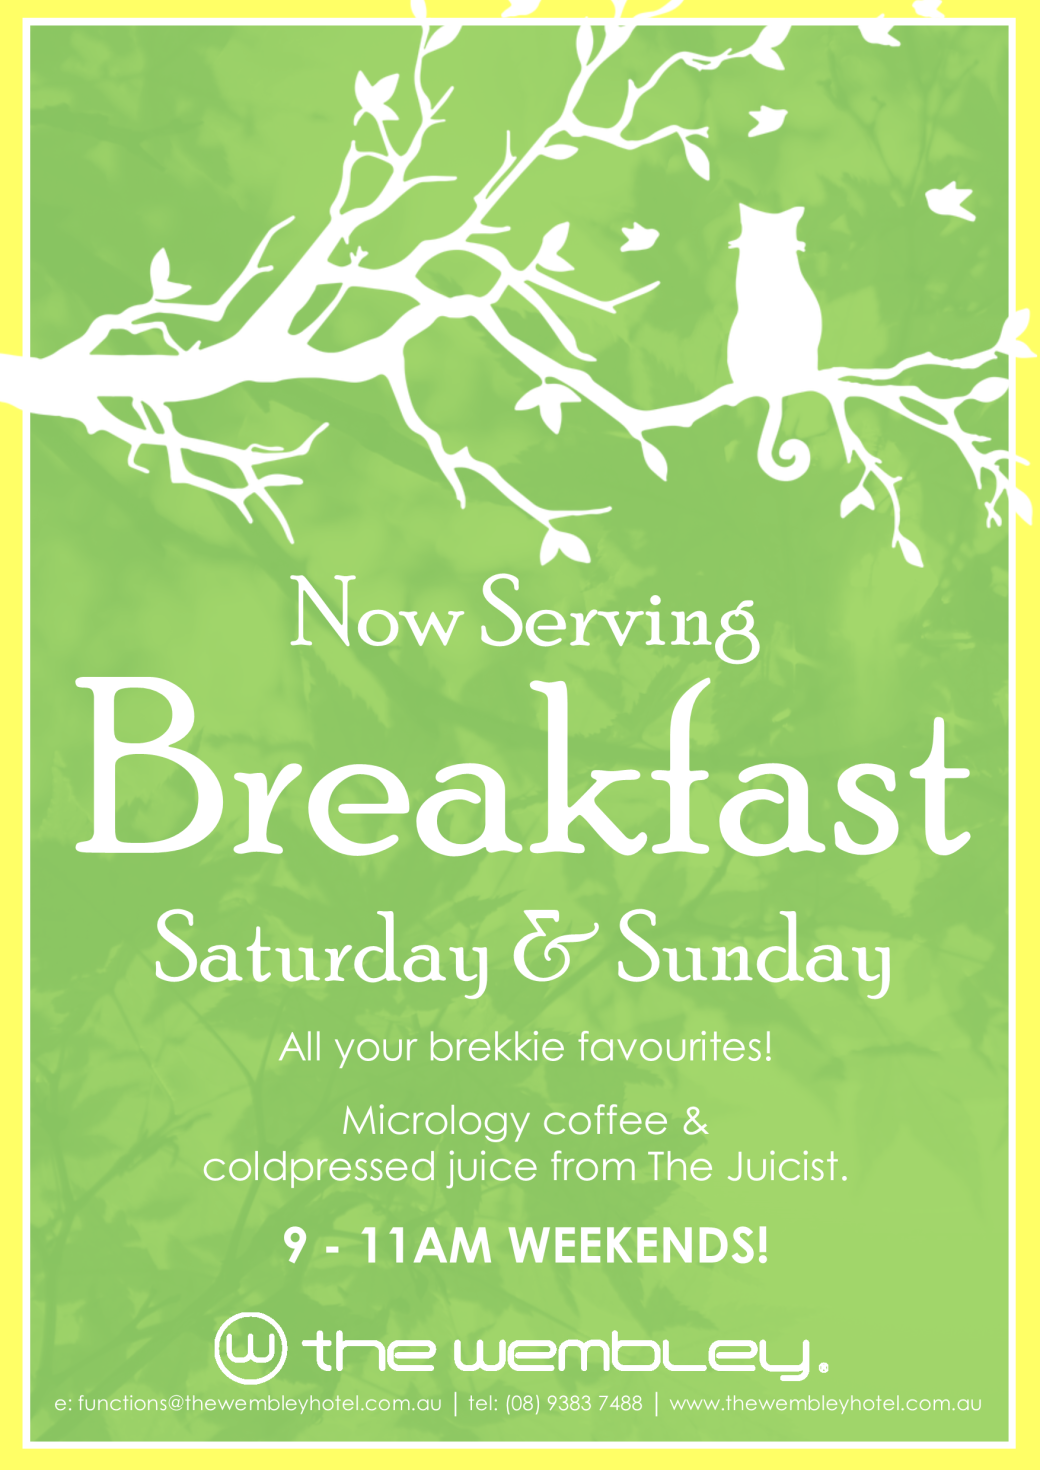 Now Serving BreakfastREV2